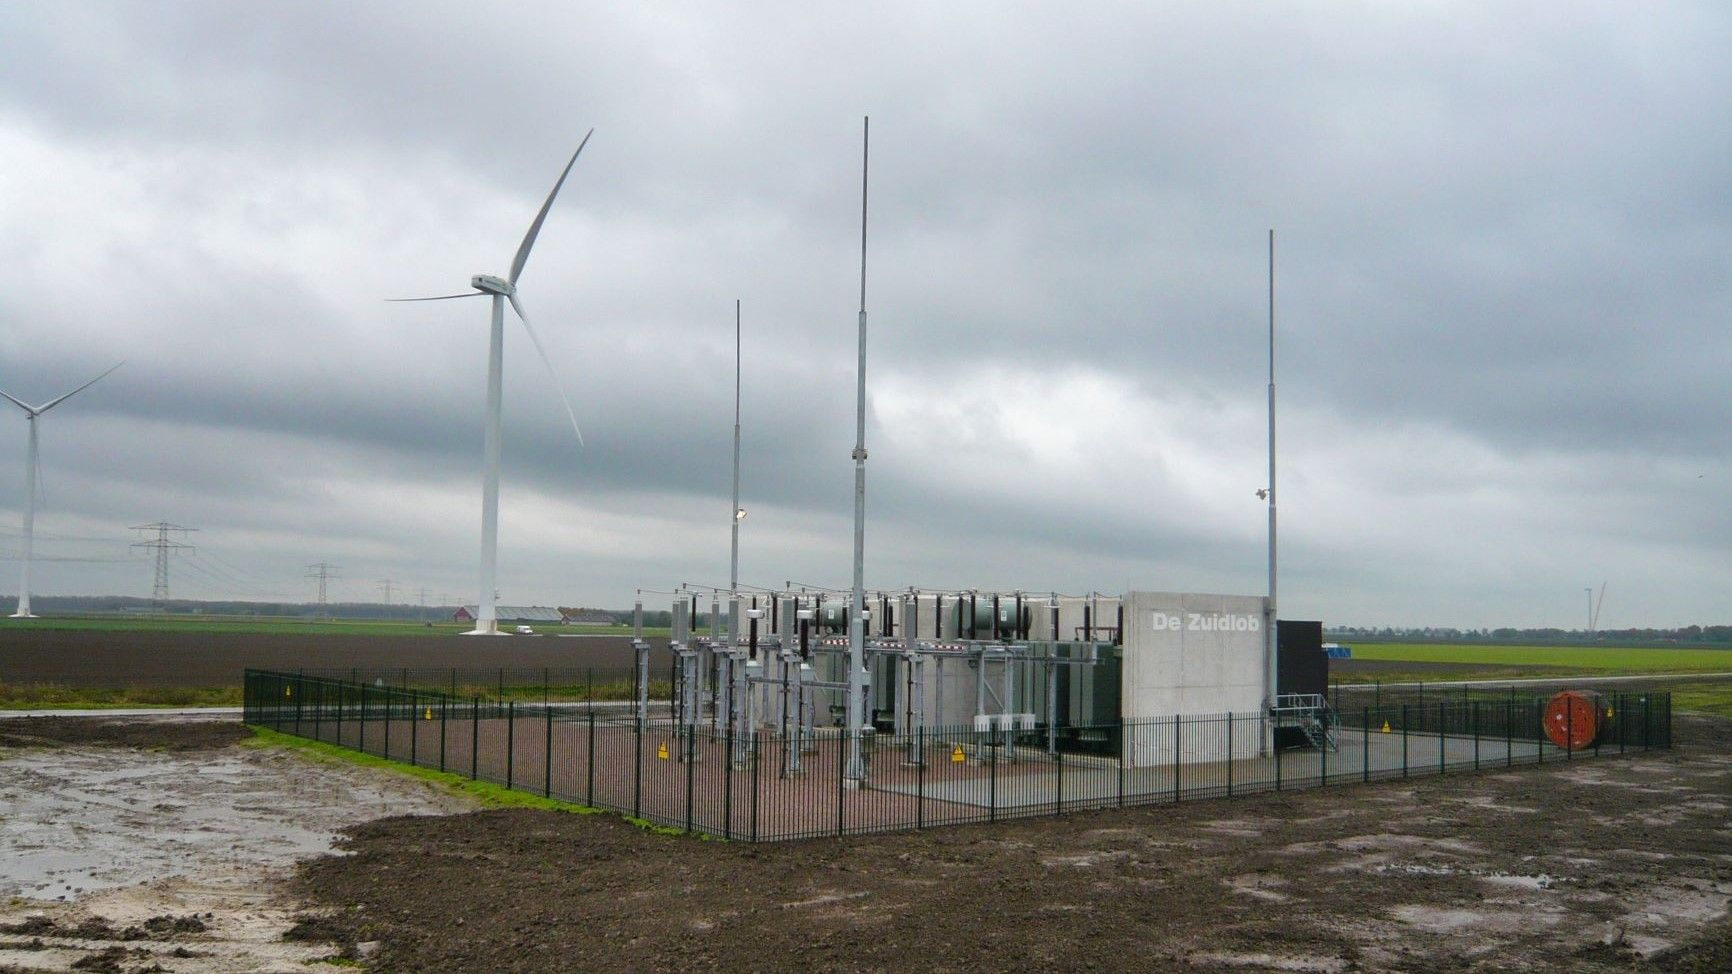 Zuidlob wind farm onshore high voltage substation